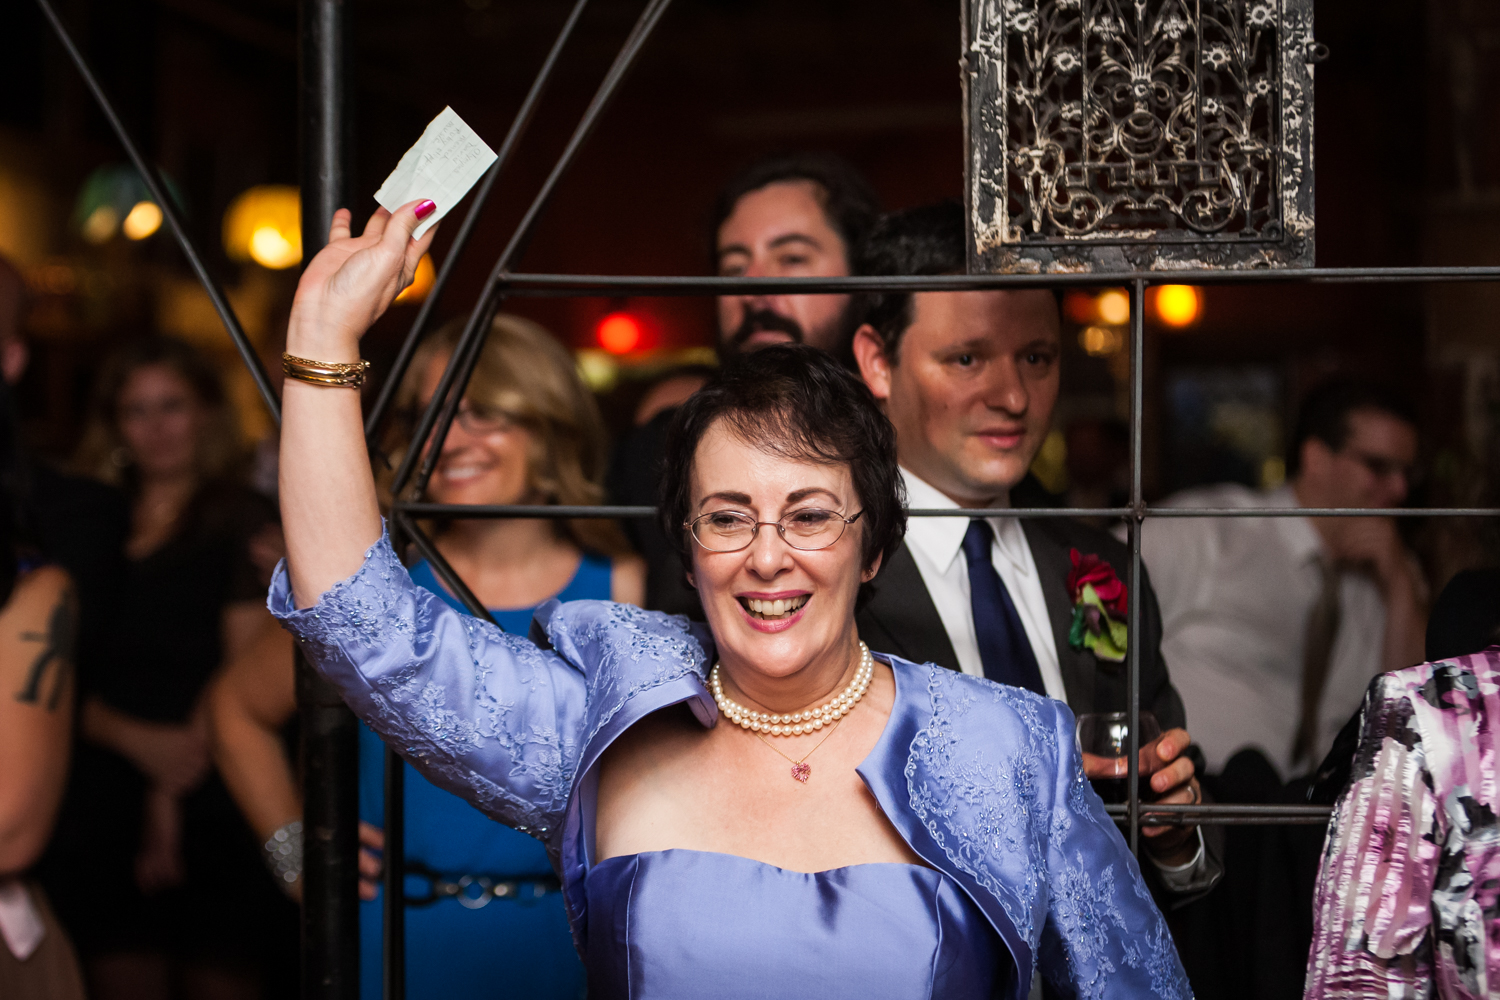 Mother of bride lifting piece of paper in the air